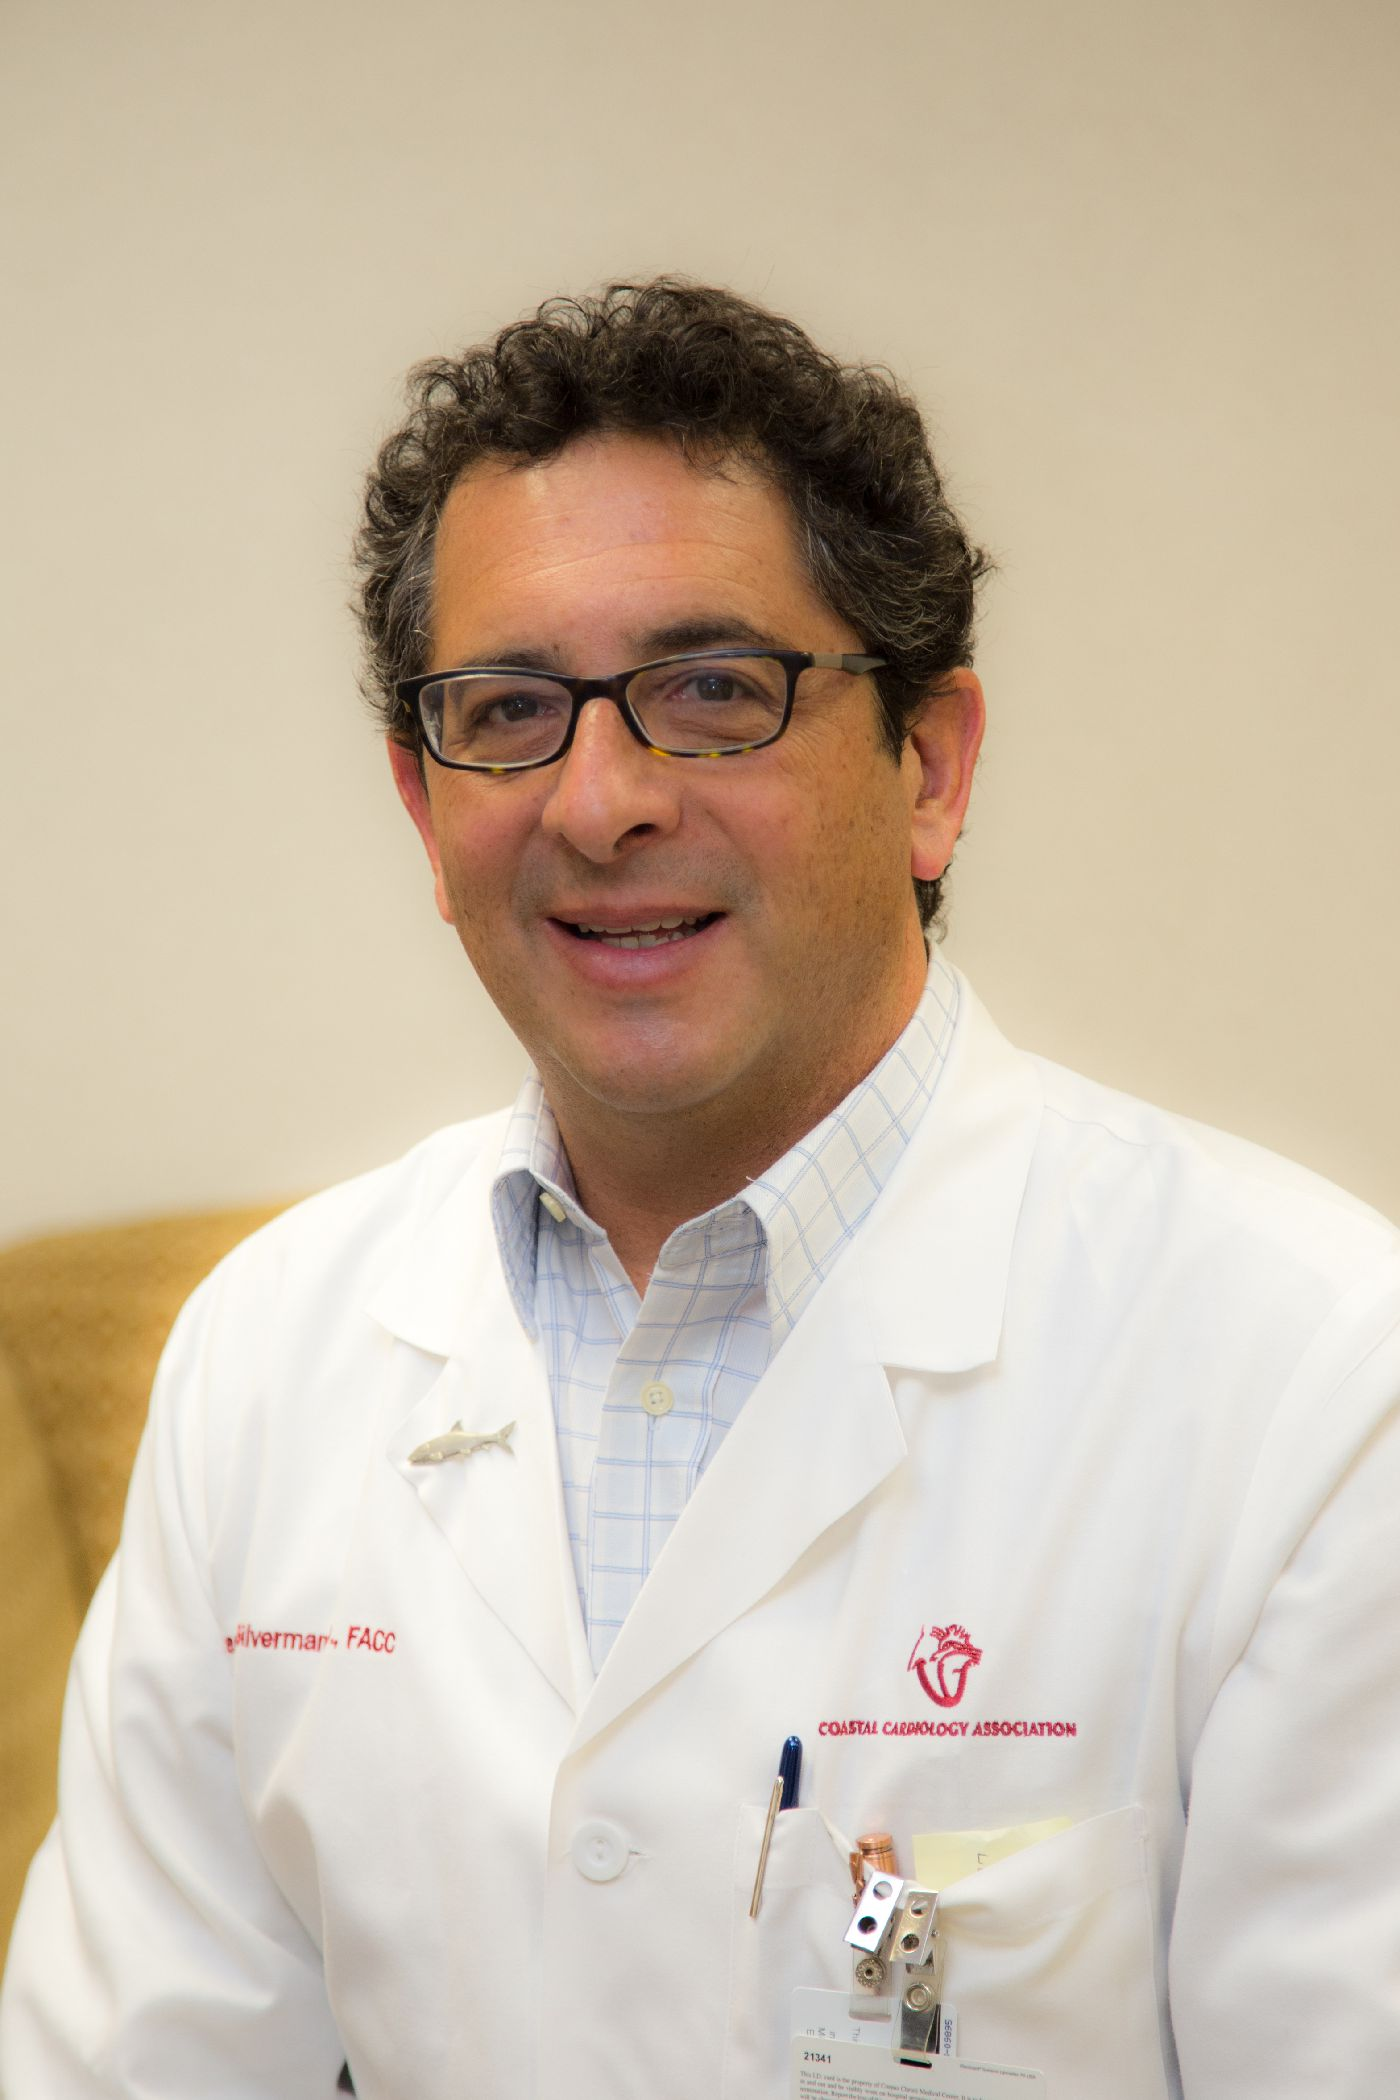 Dr. Silverman - Cardiologist at Coastal Cardiology Association